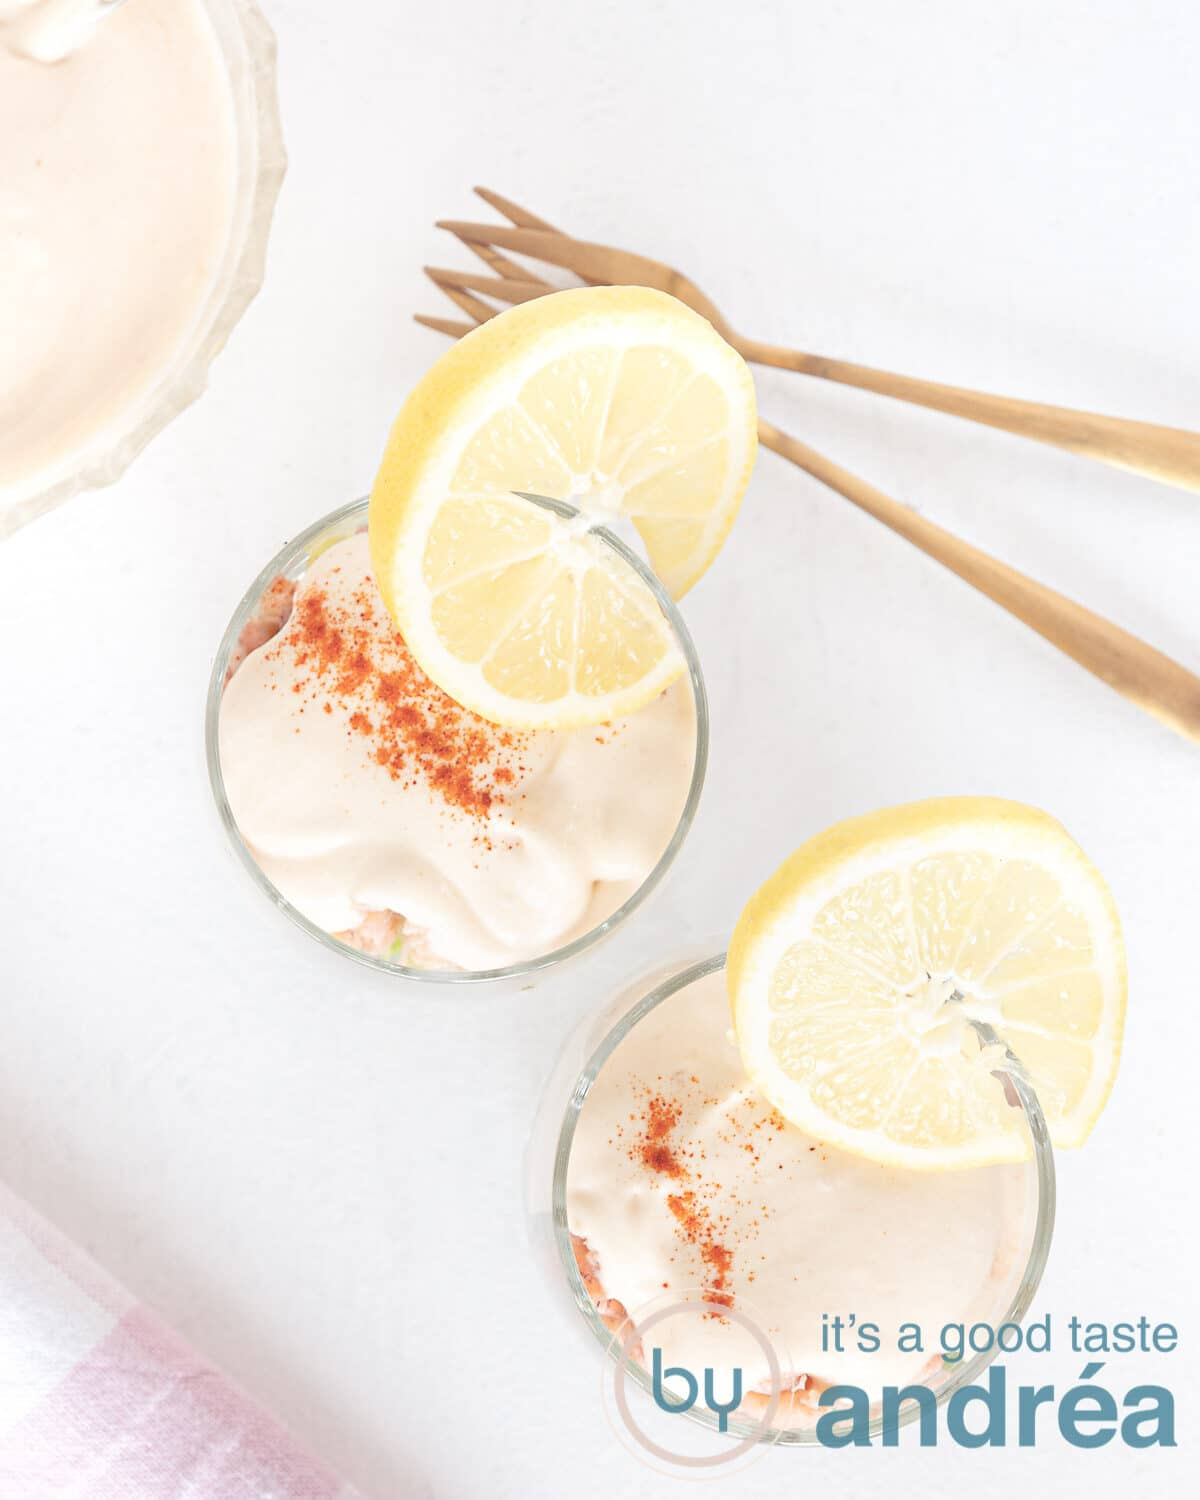 upside photo of two glasses with a shrimp cocktail